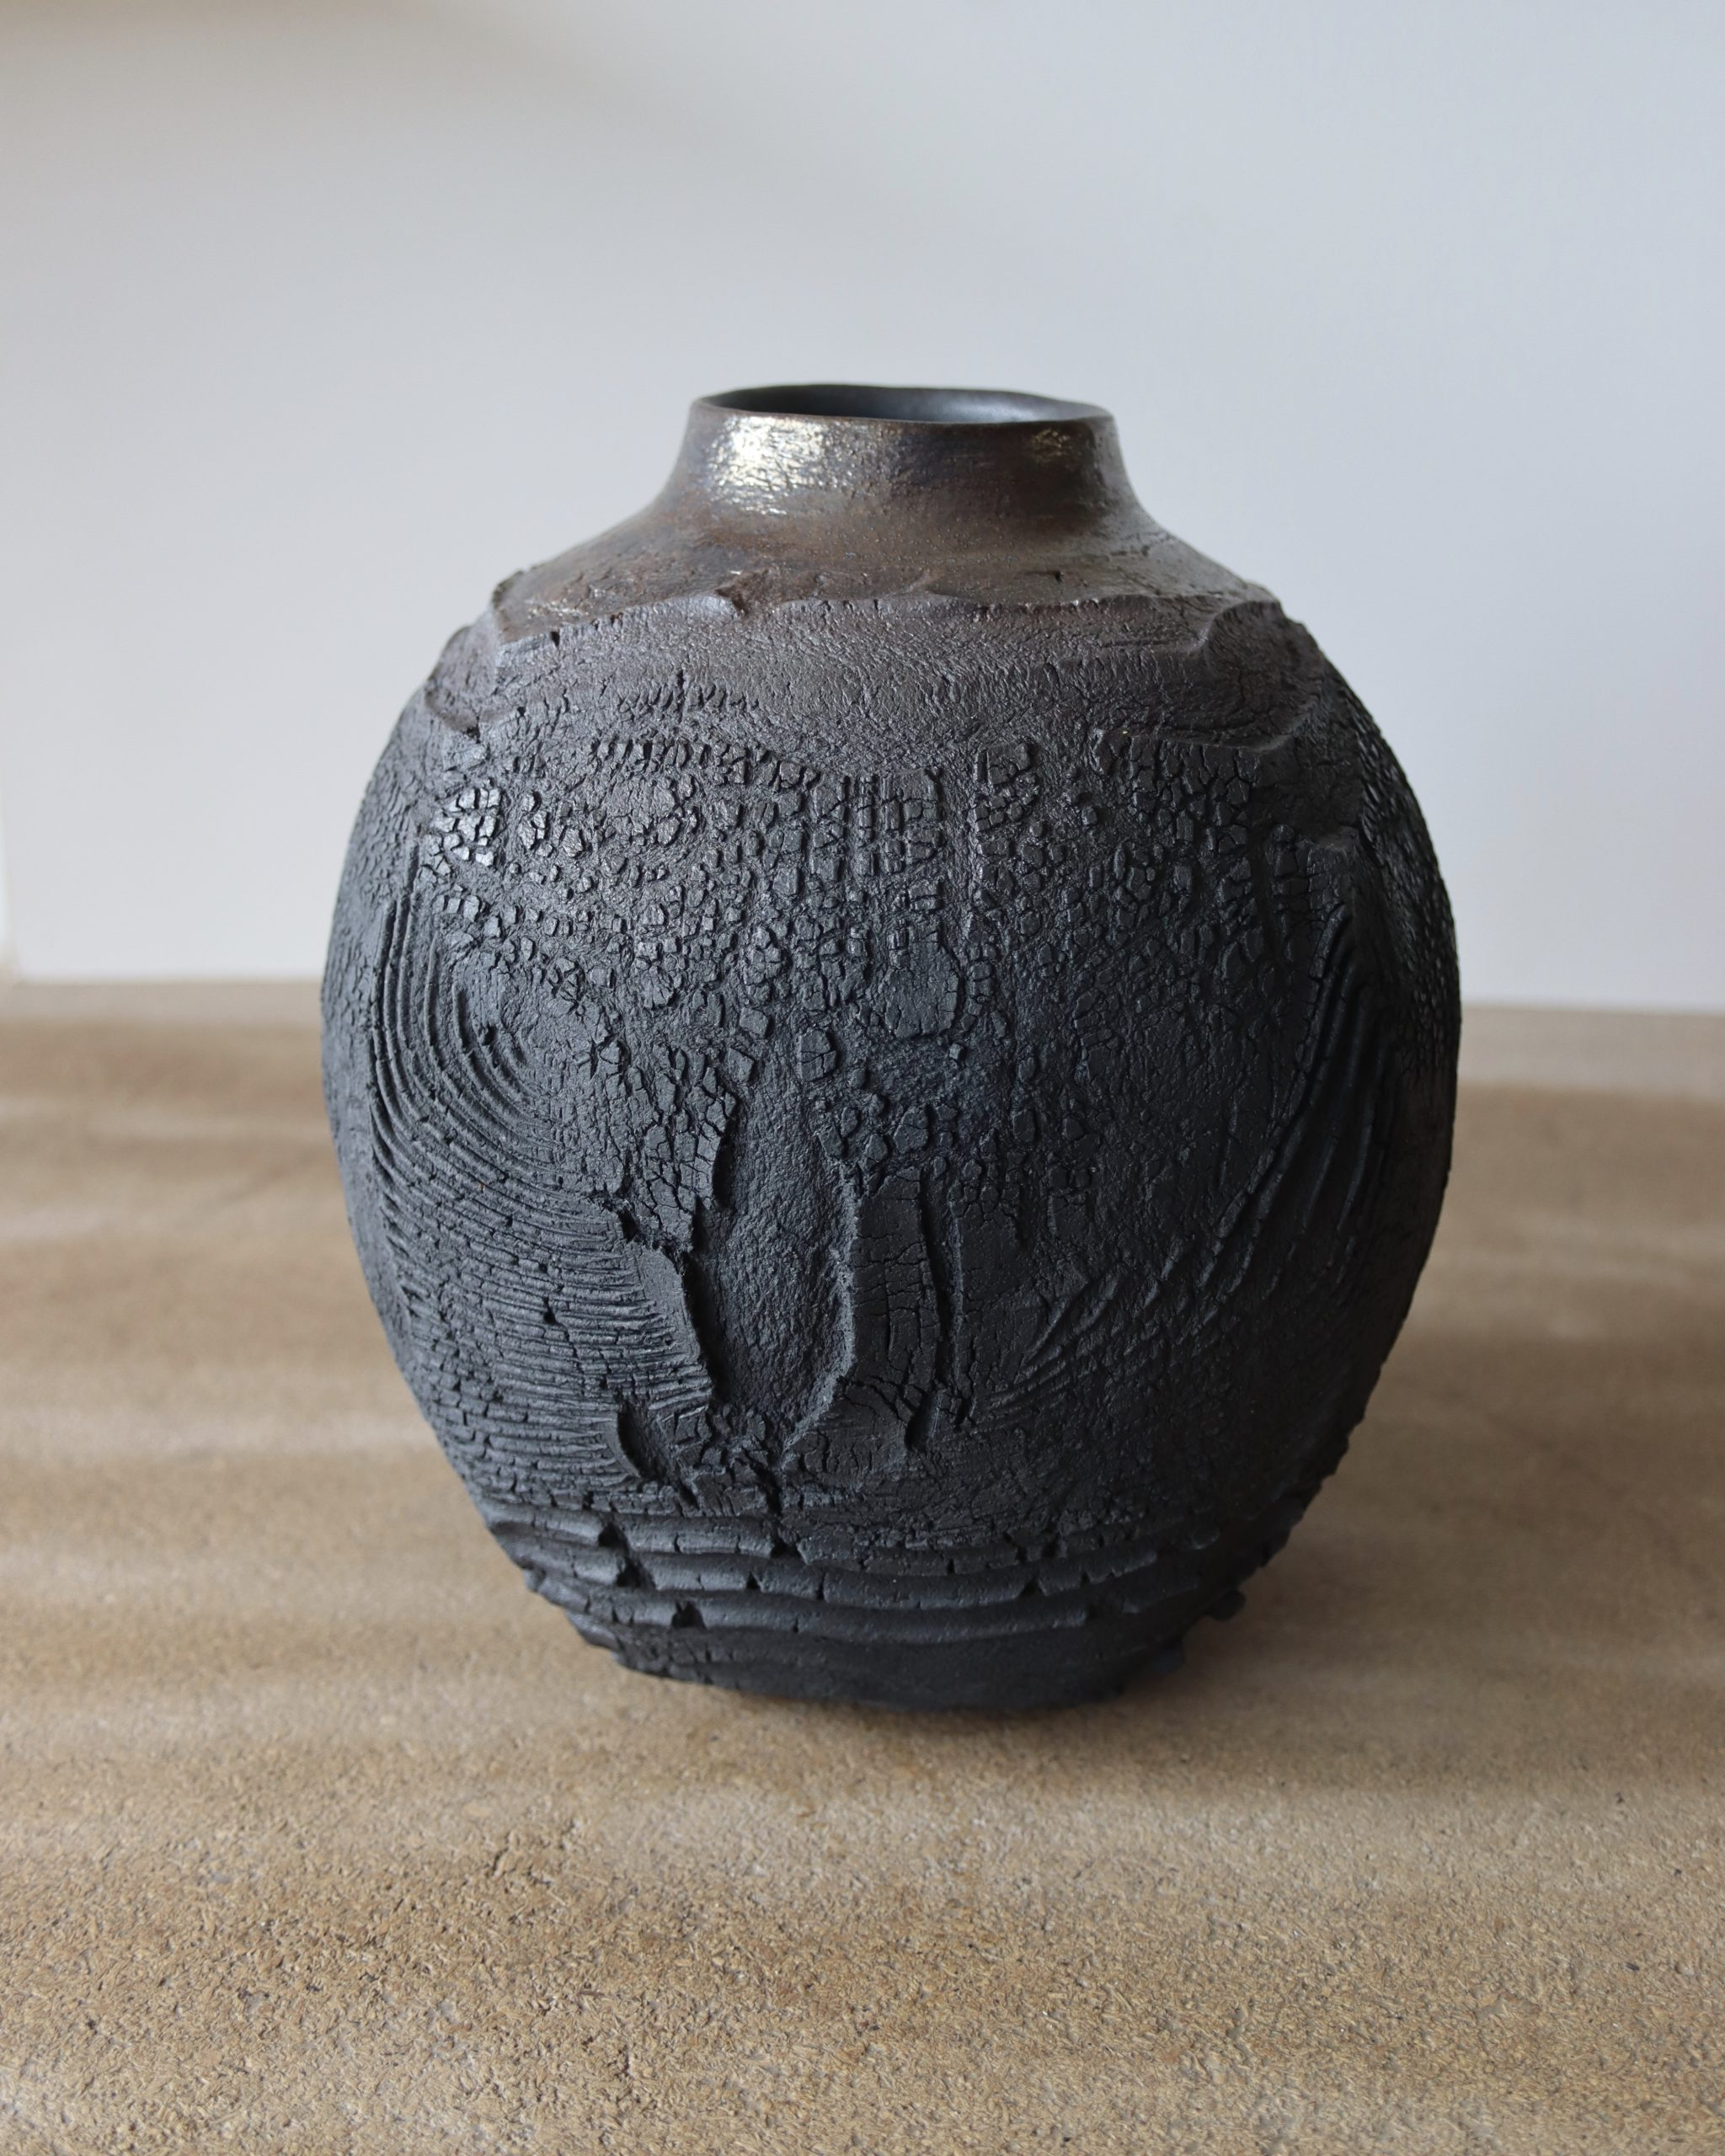 Patricia Shone - New Ceramics at Beaux Arts Bath